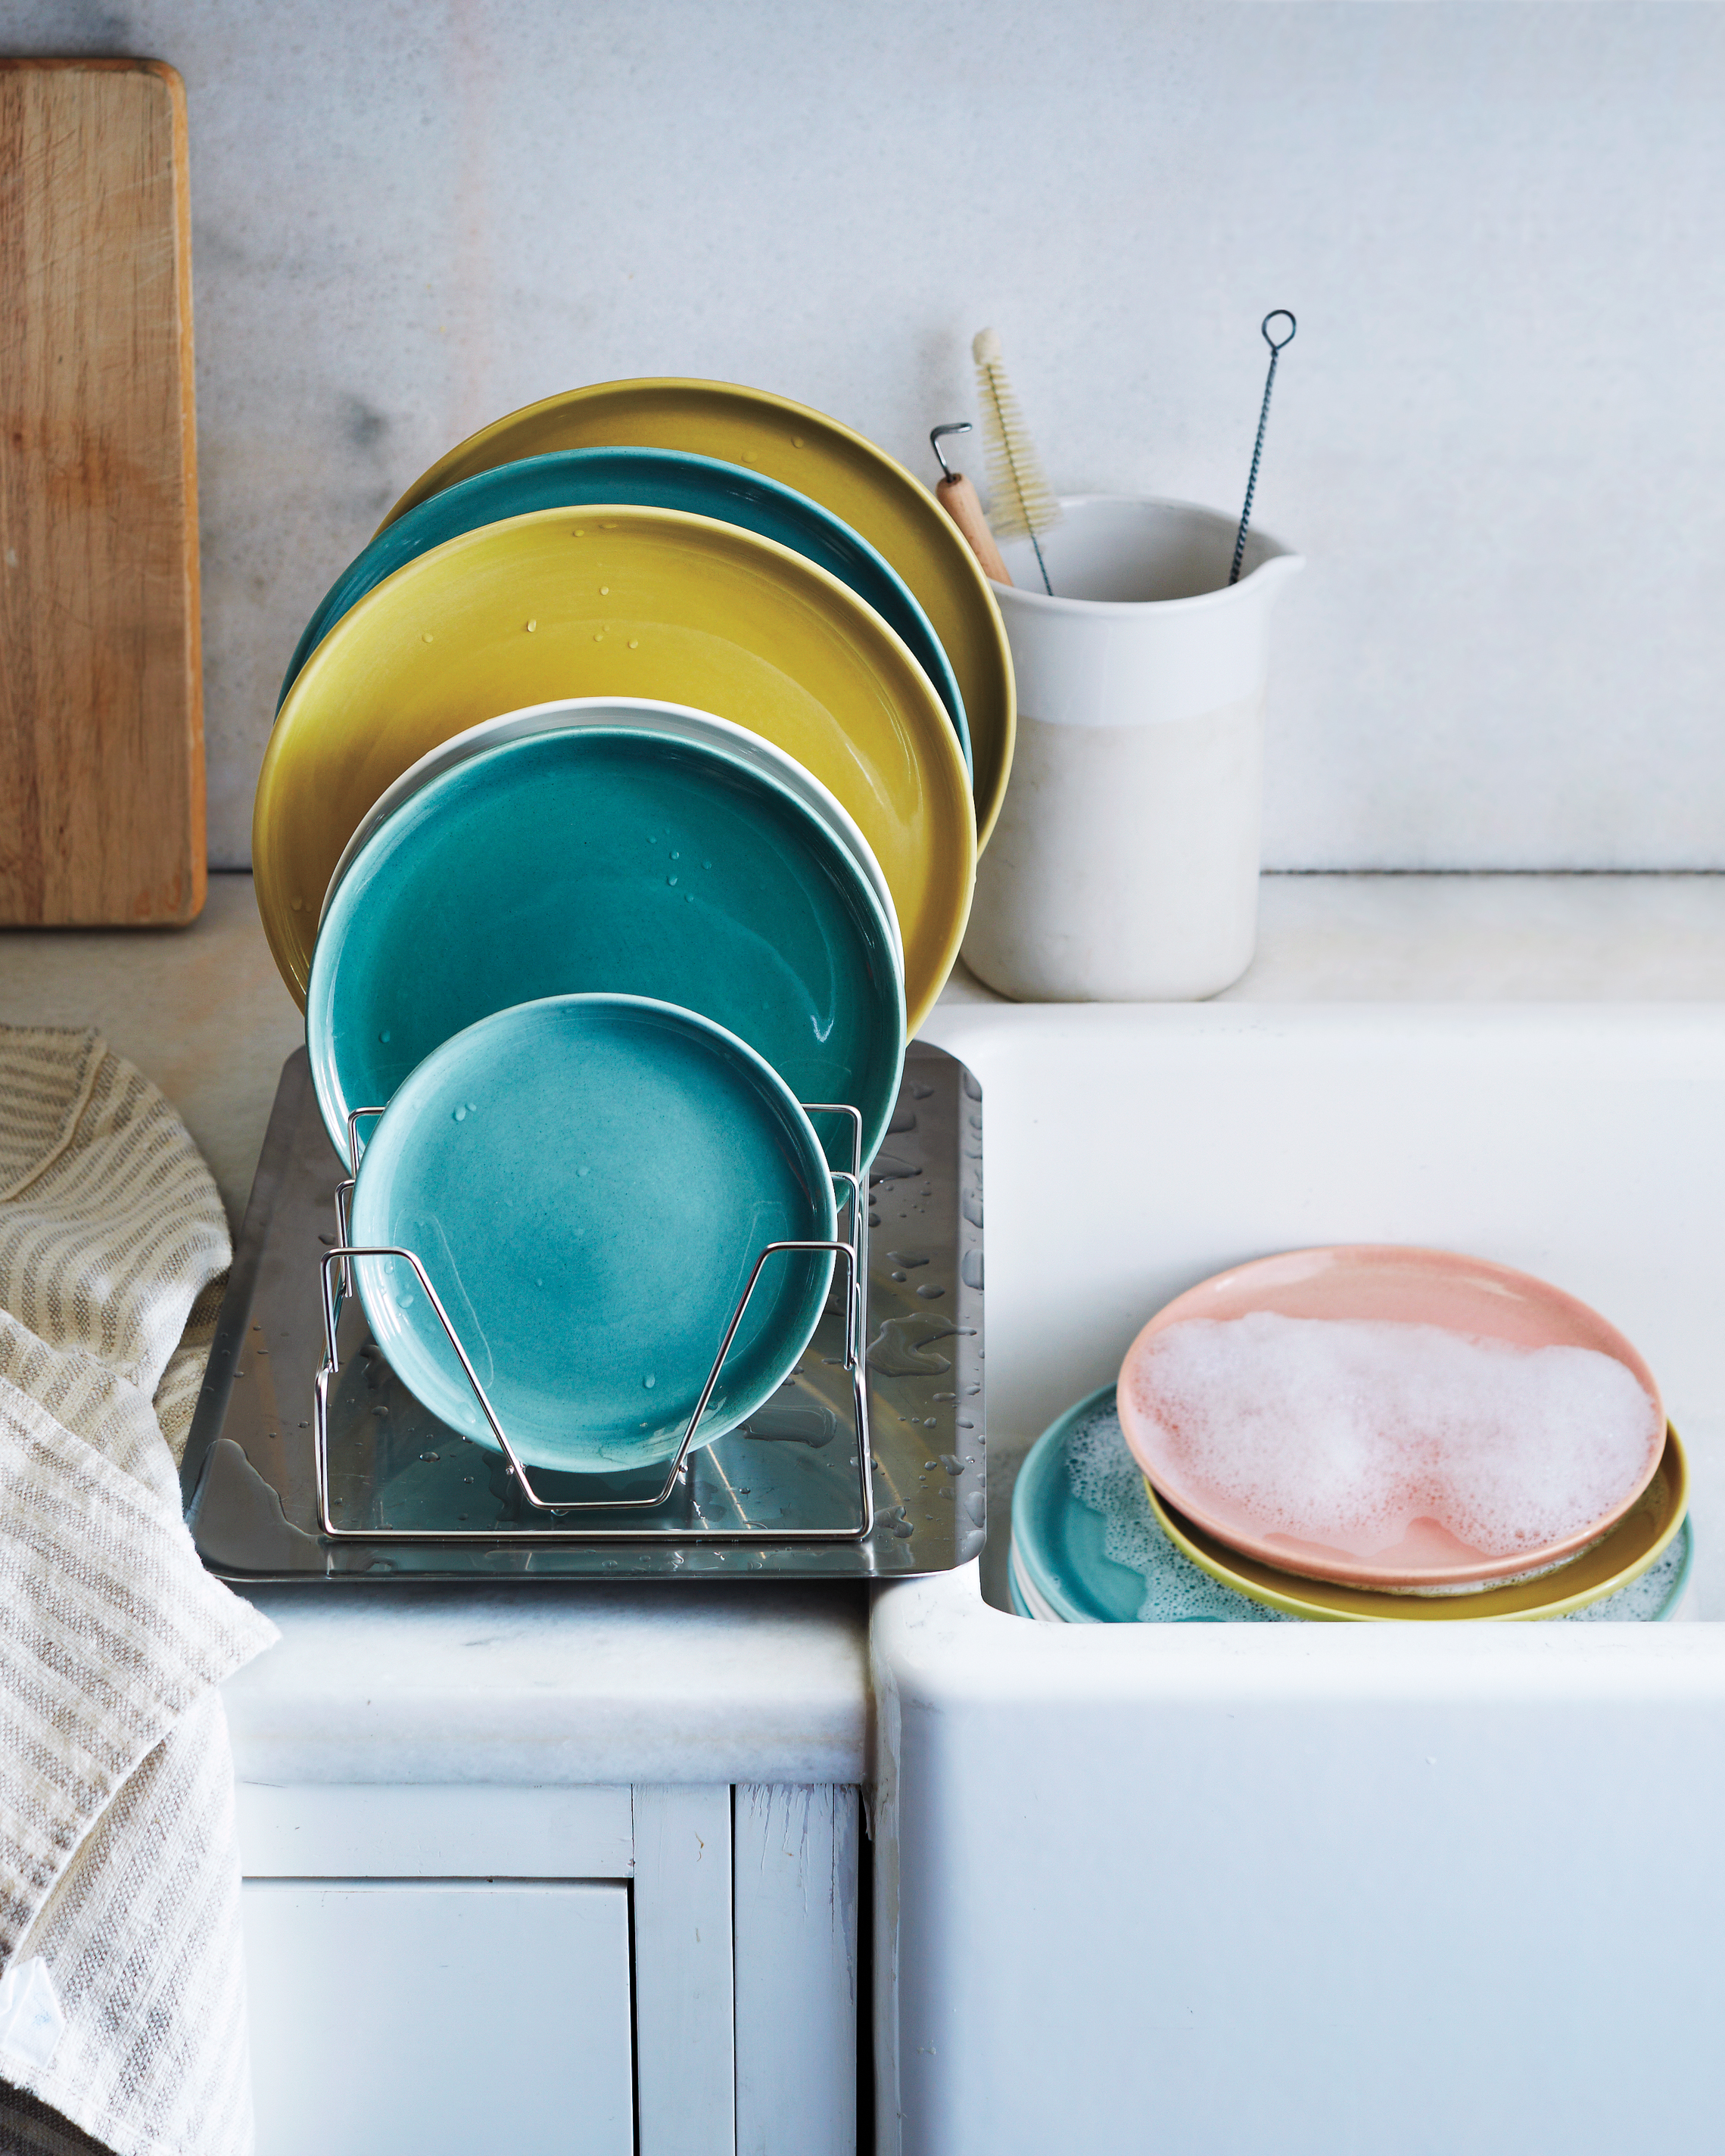 dishes-0030-md110856.jpg